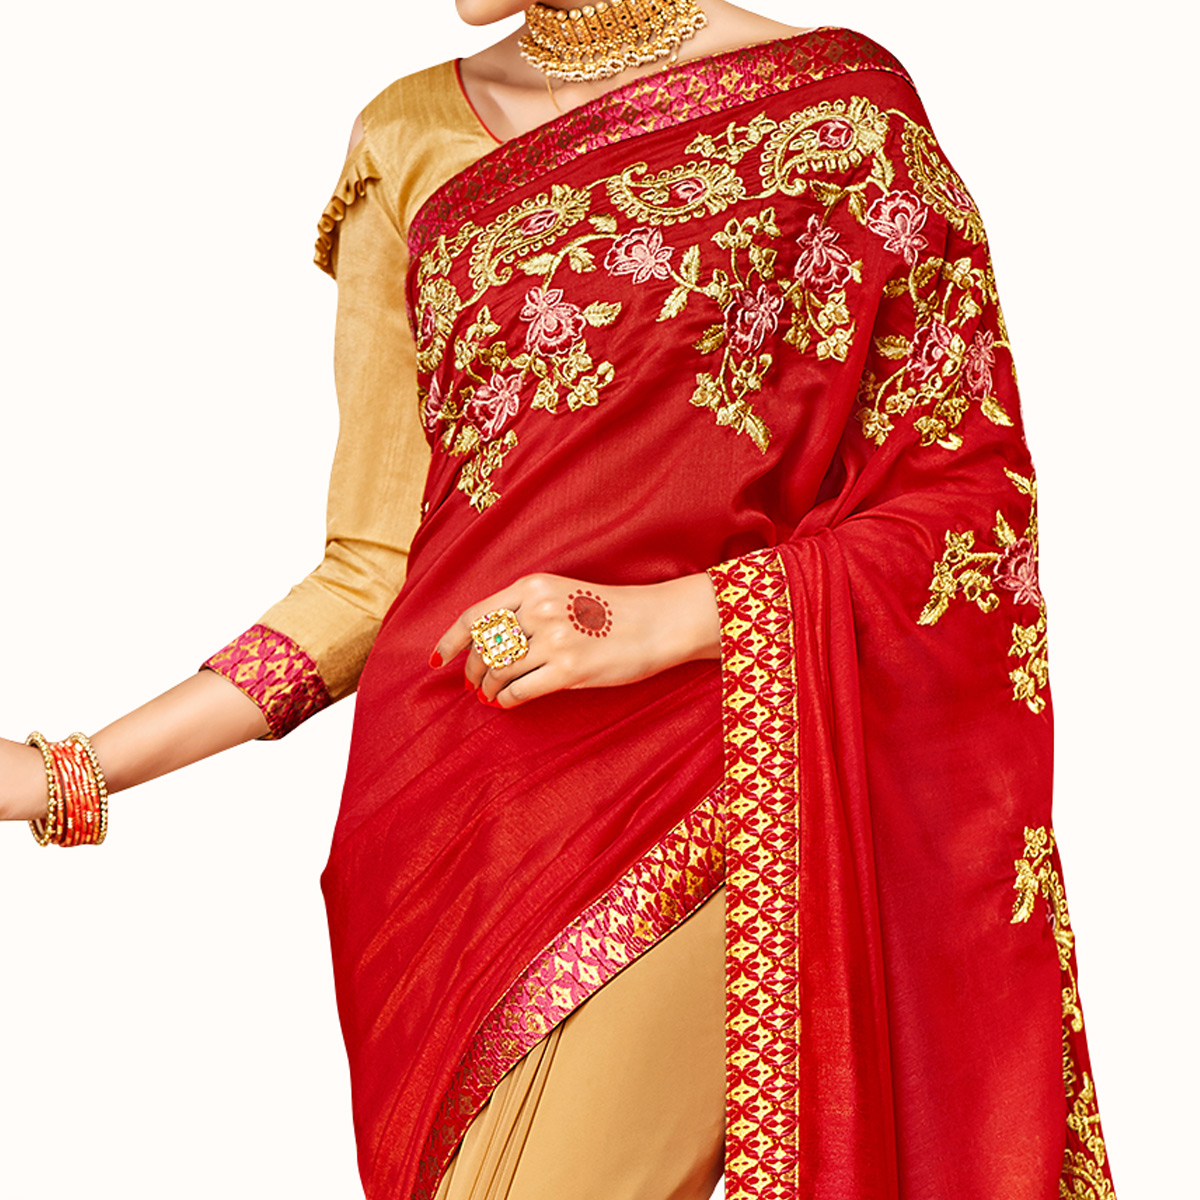 Entrancing Red-Beige Colored Party Wear Embroidered Half & Half Saree